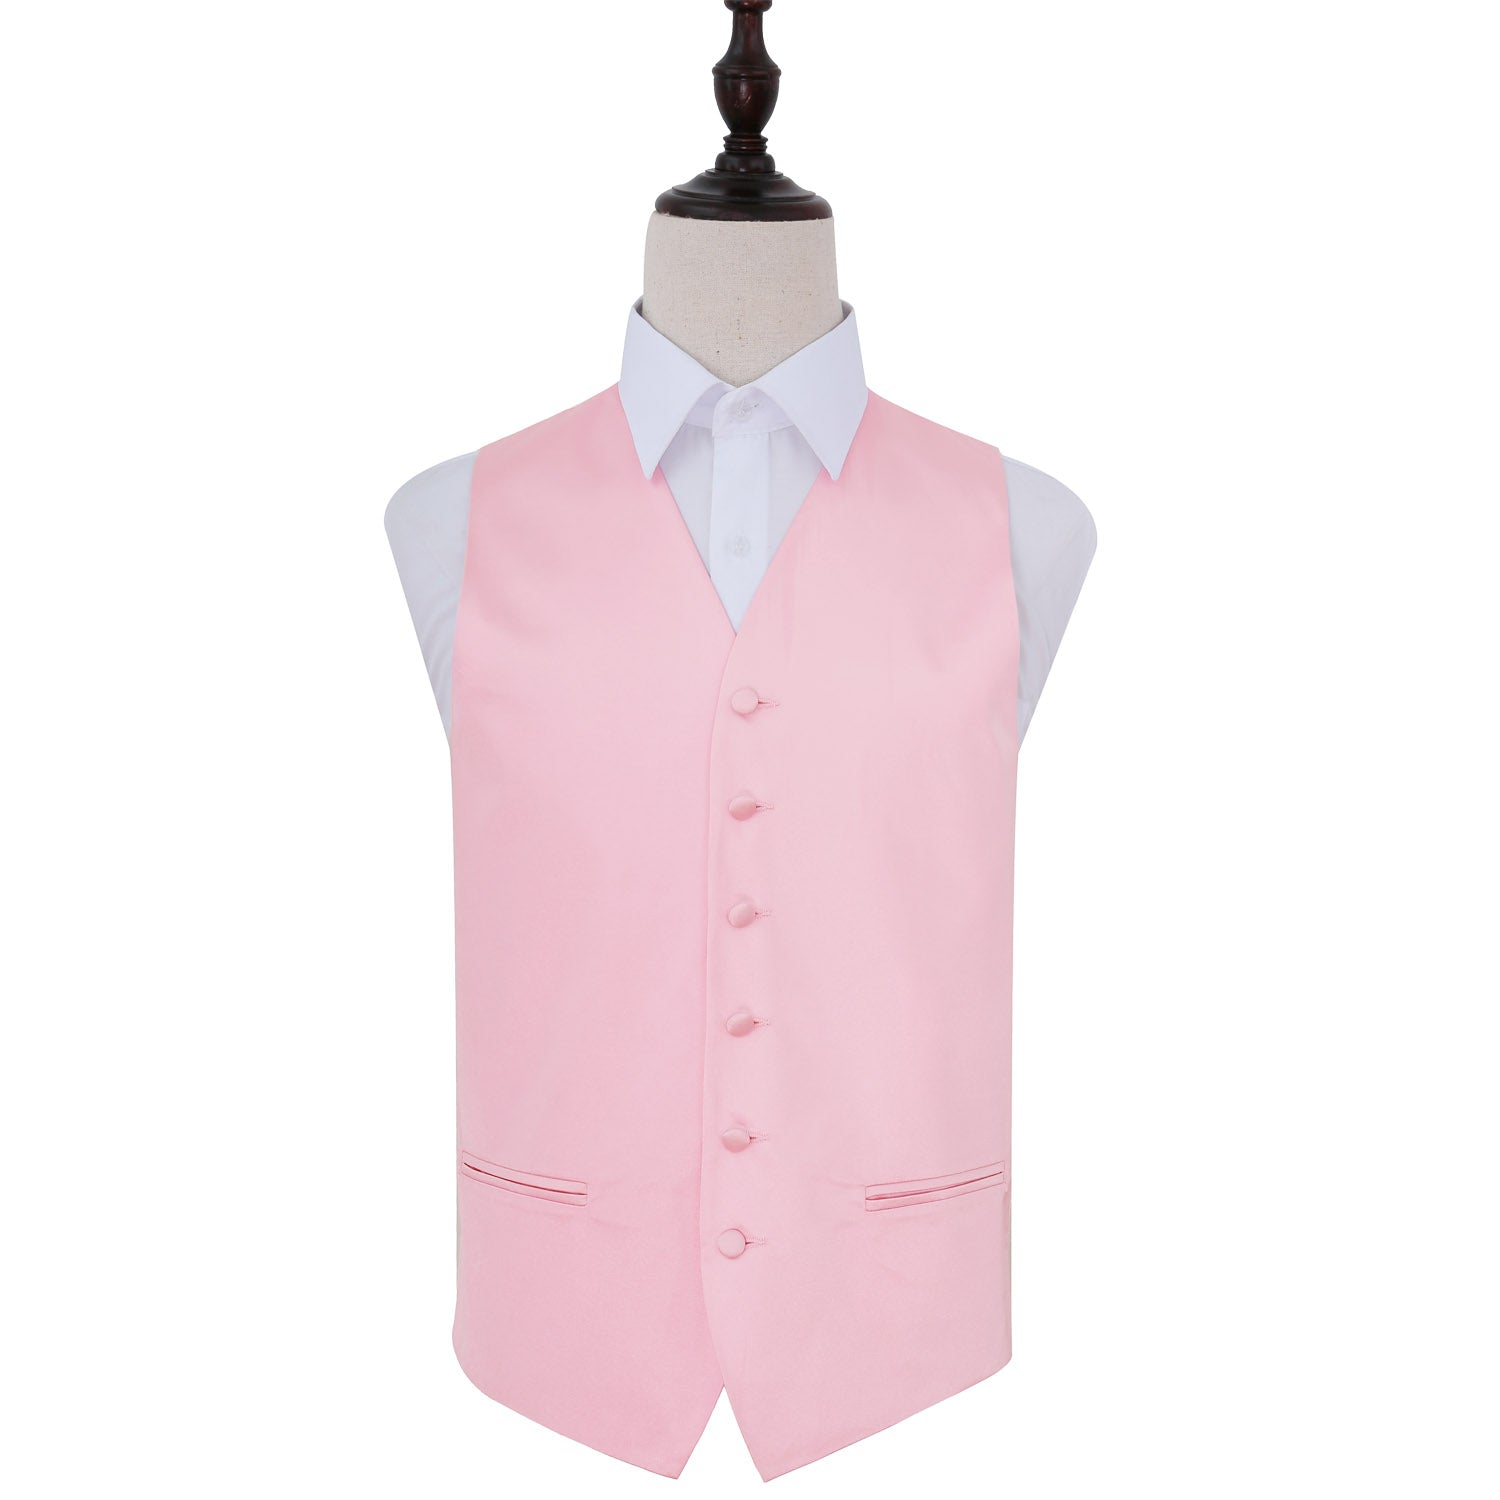 Plain Satin Waistcoat - Baby Pink, 36', Clothing & Accessories by Gifts24-7